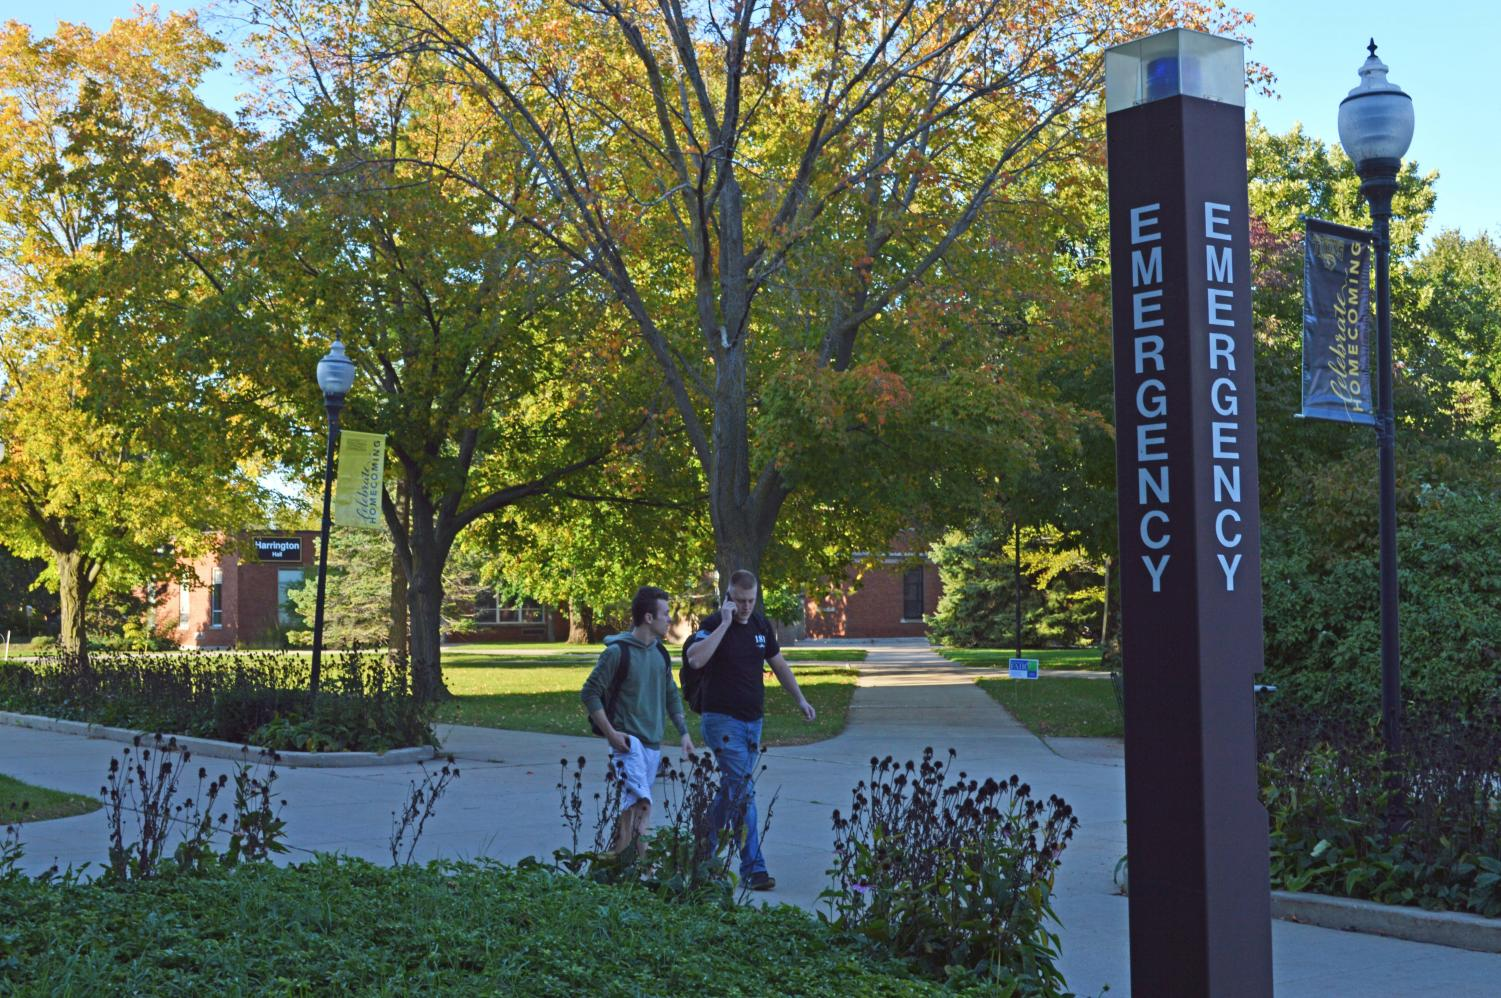 Blue light emergency phones are phasing out around campus. UP is promoting the UWO Mobile app.